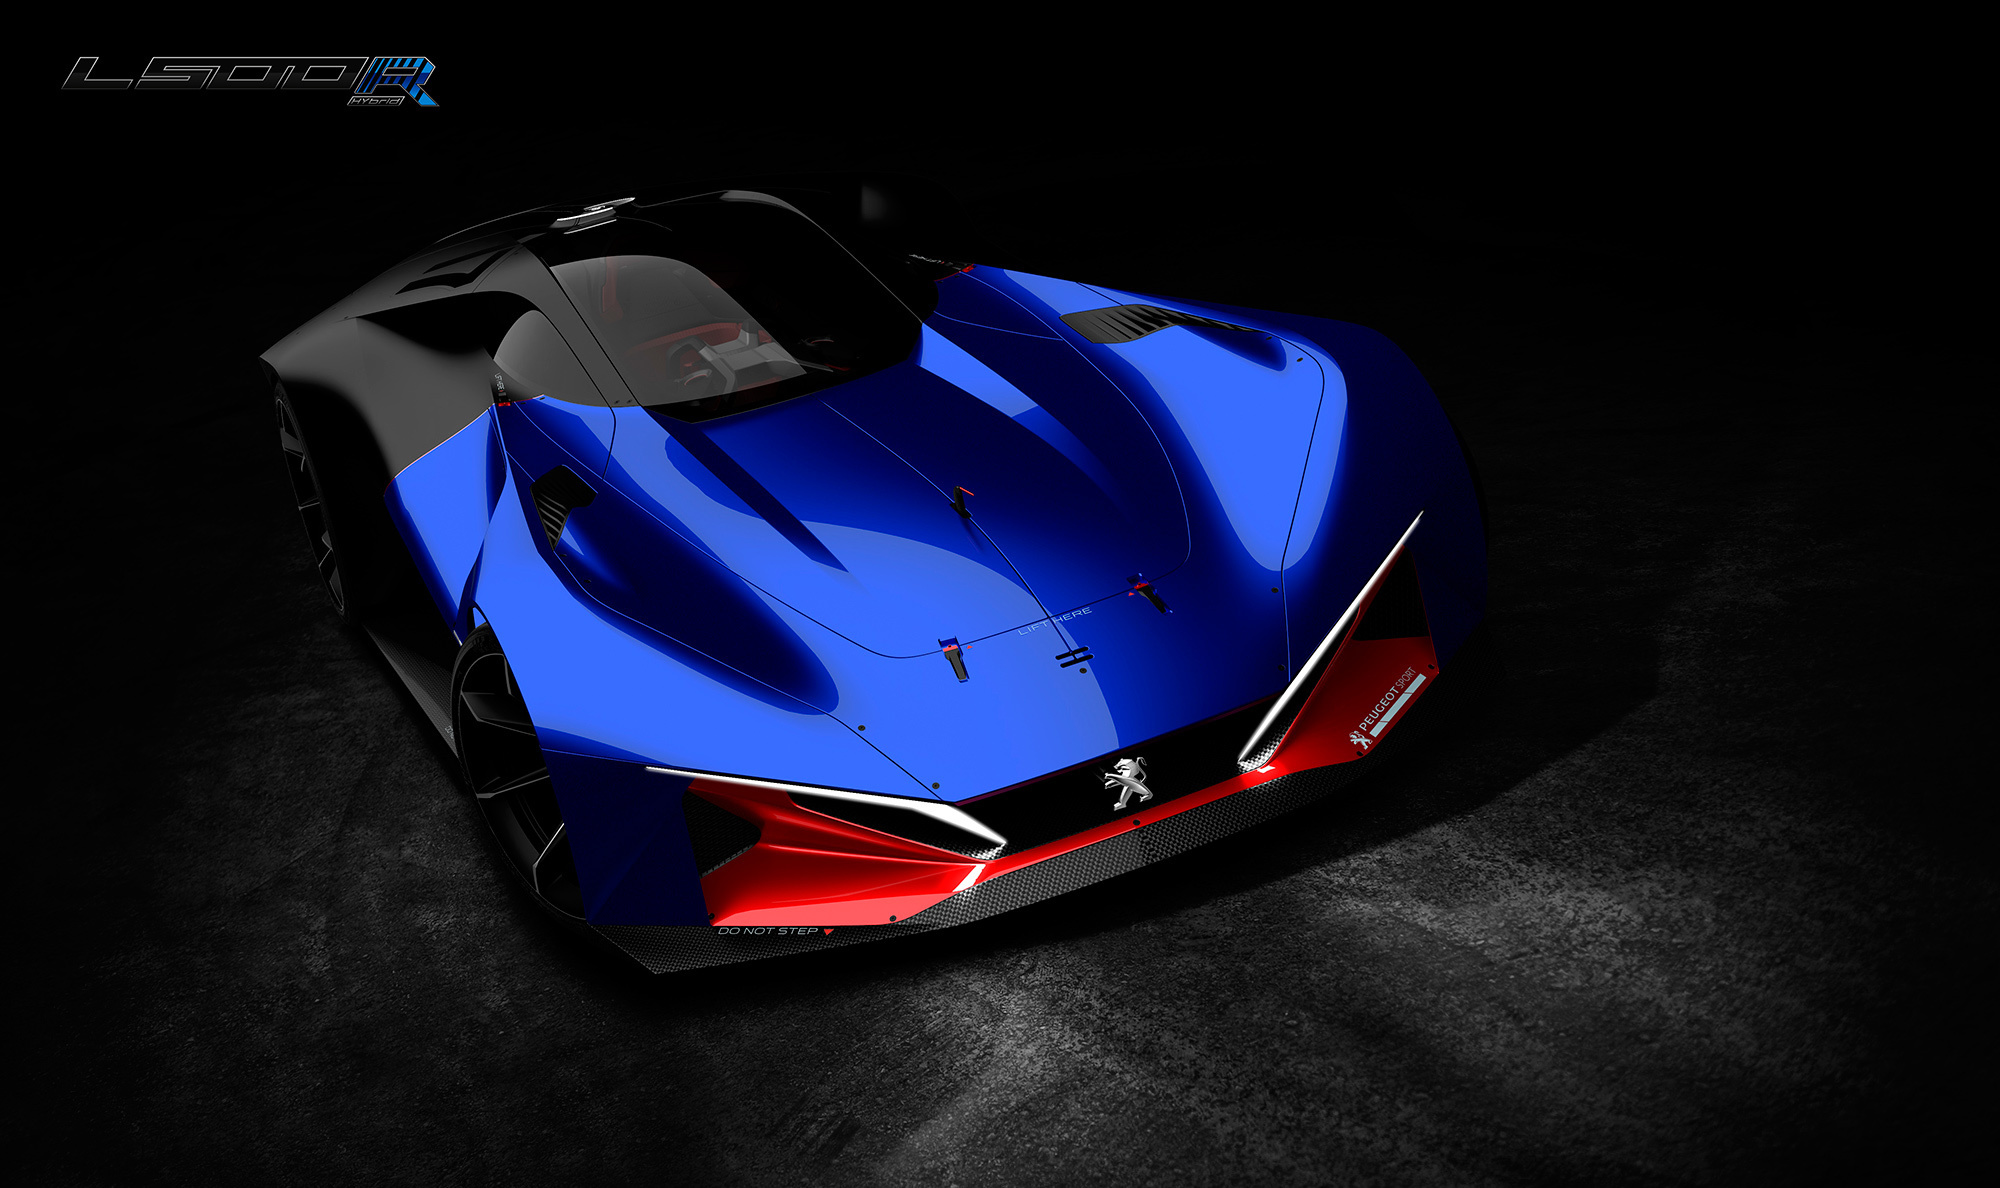 Peugeot L500 R HYbrid HD Wallpaper